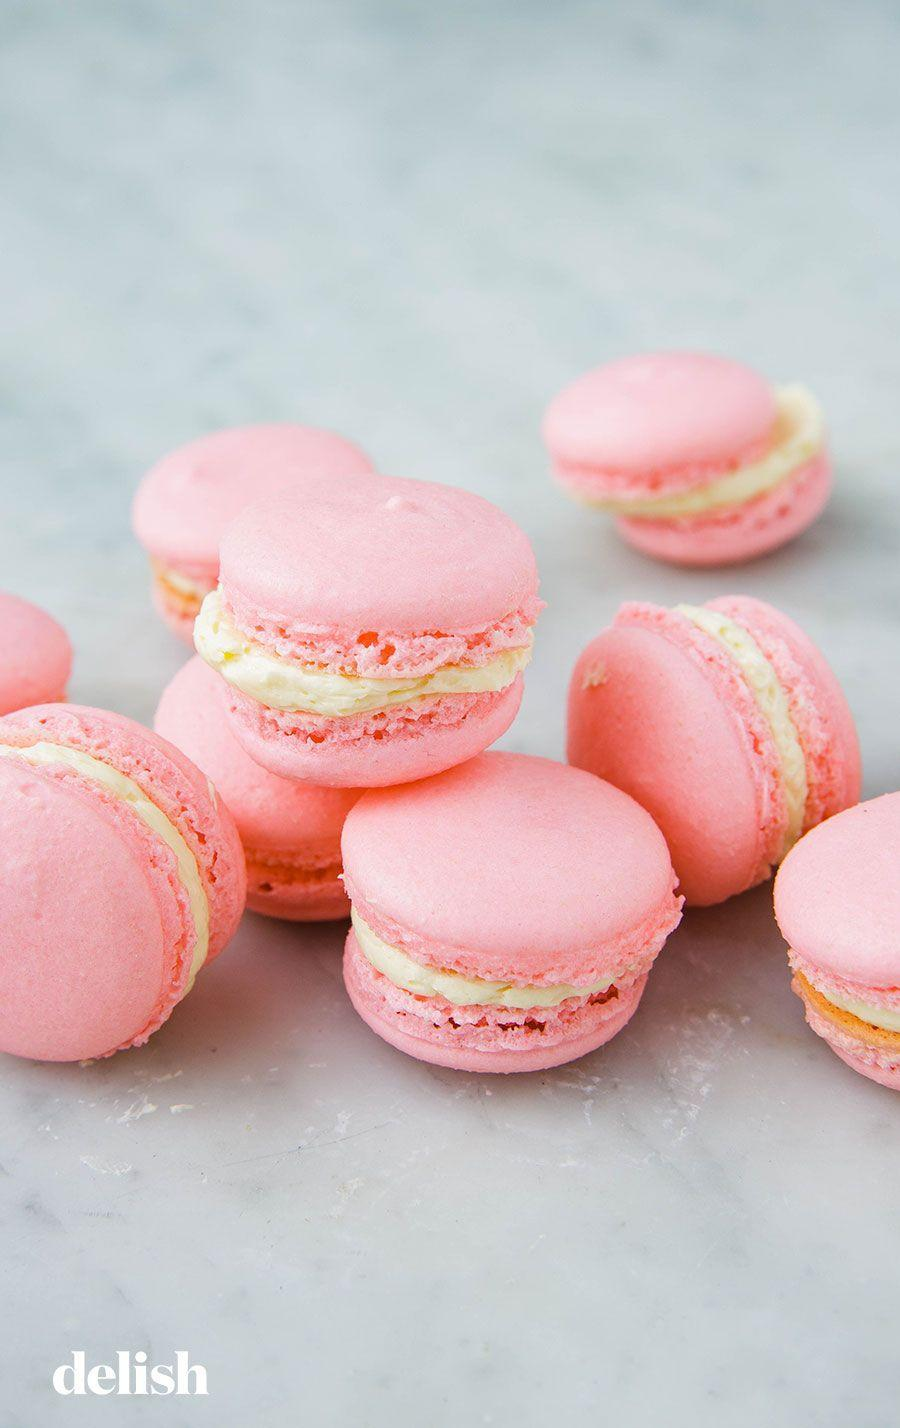 """<p>These little guys are actually super easy to make—and so delicious to eat.</p><p>Get the recipe from <a href=""""https://www.delish.com/cooking/recipe-ideas/a25324082/how-to-make-macarons/"""" rel=""""nofollow noopener"""" target=""""_blank"""" data-ylk=""""slk:Delish"""" class=""""link rapid-noclick-resp"""">Delish</a>.</p>"""